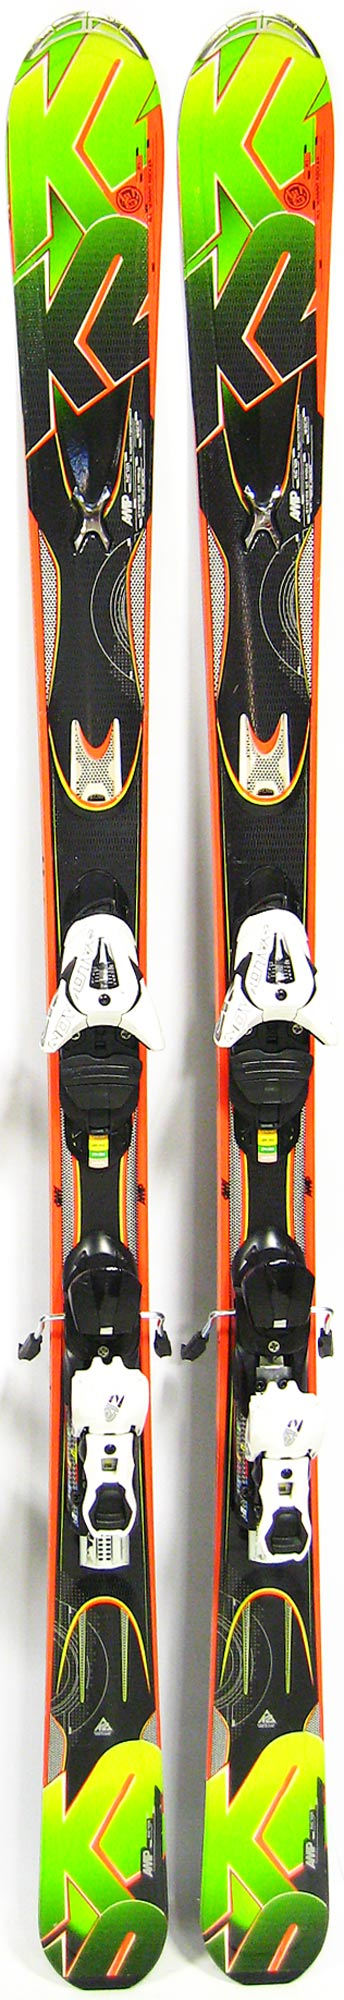 Topsheets of 2013 K2 Amp Rictor Skis For Sale